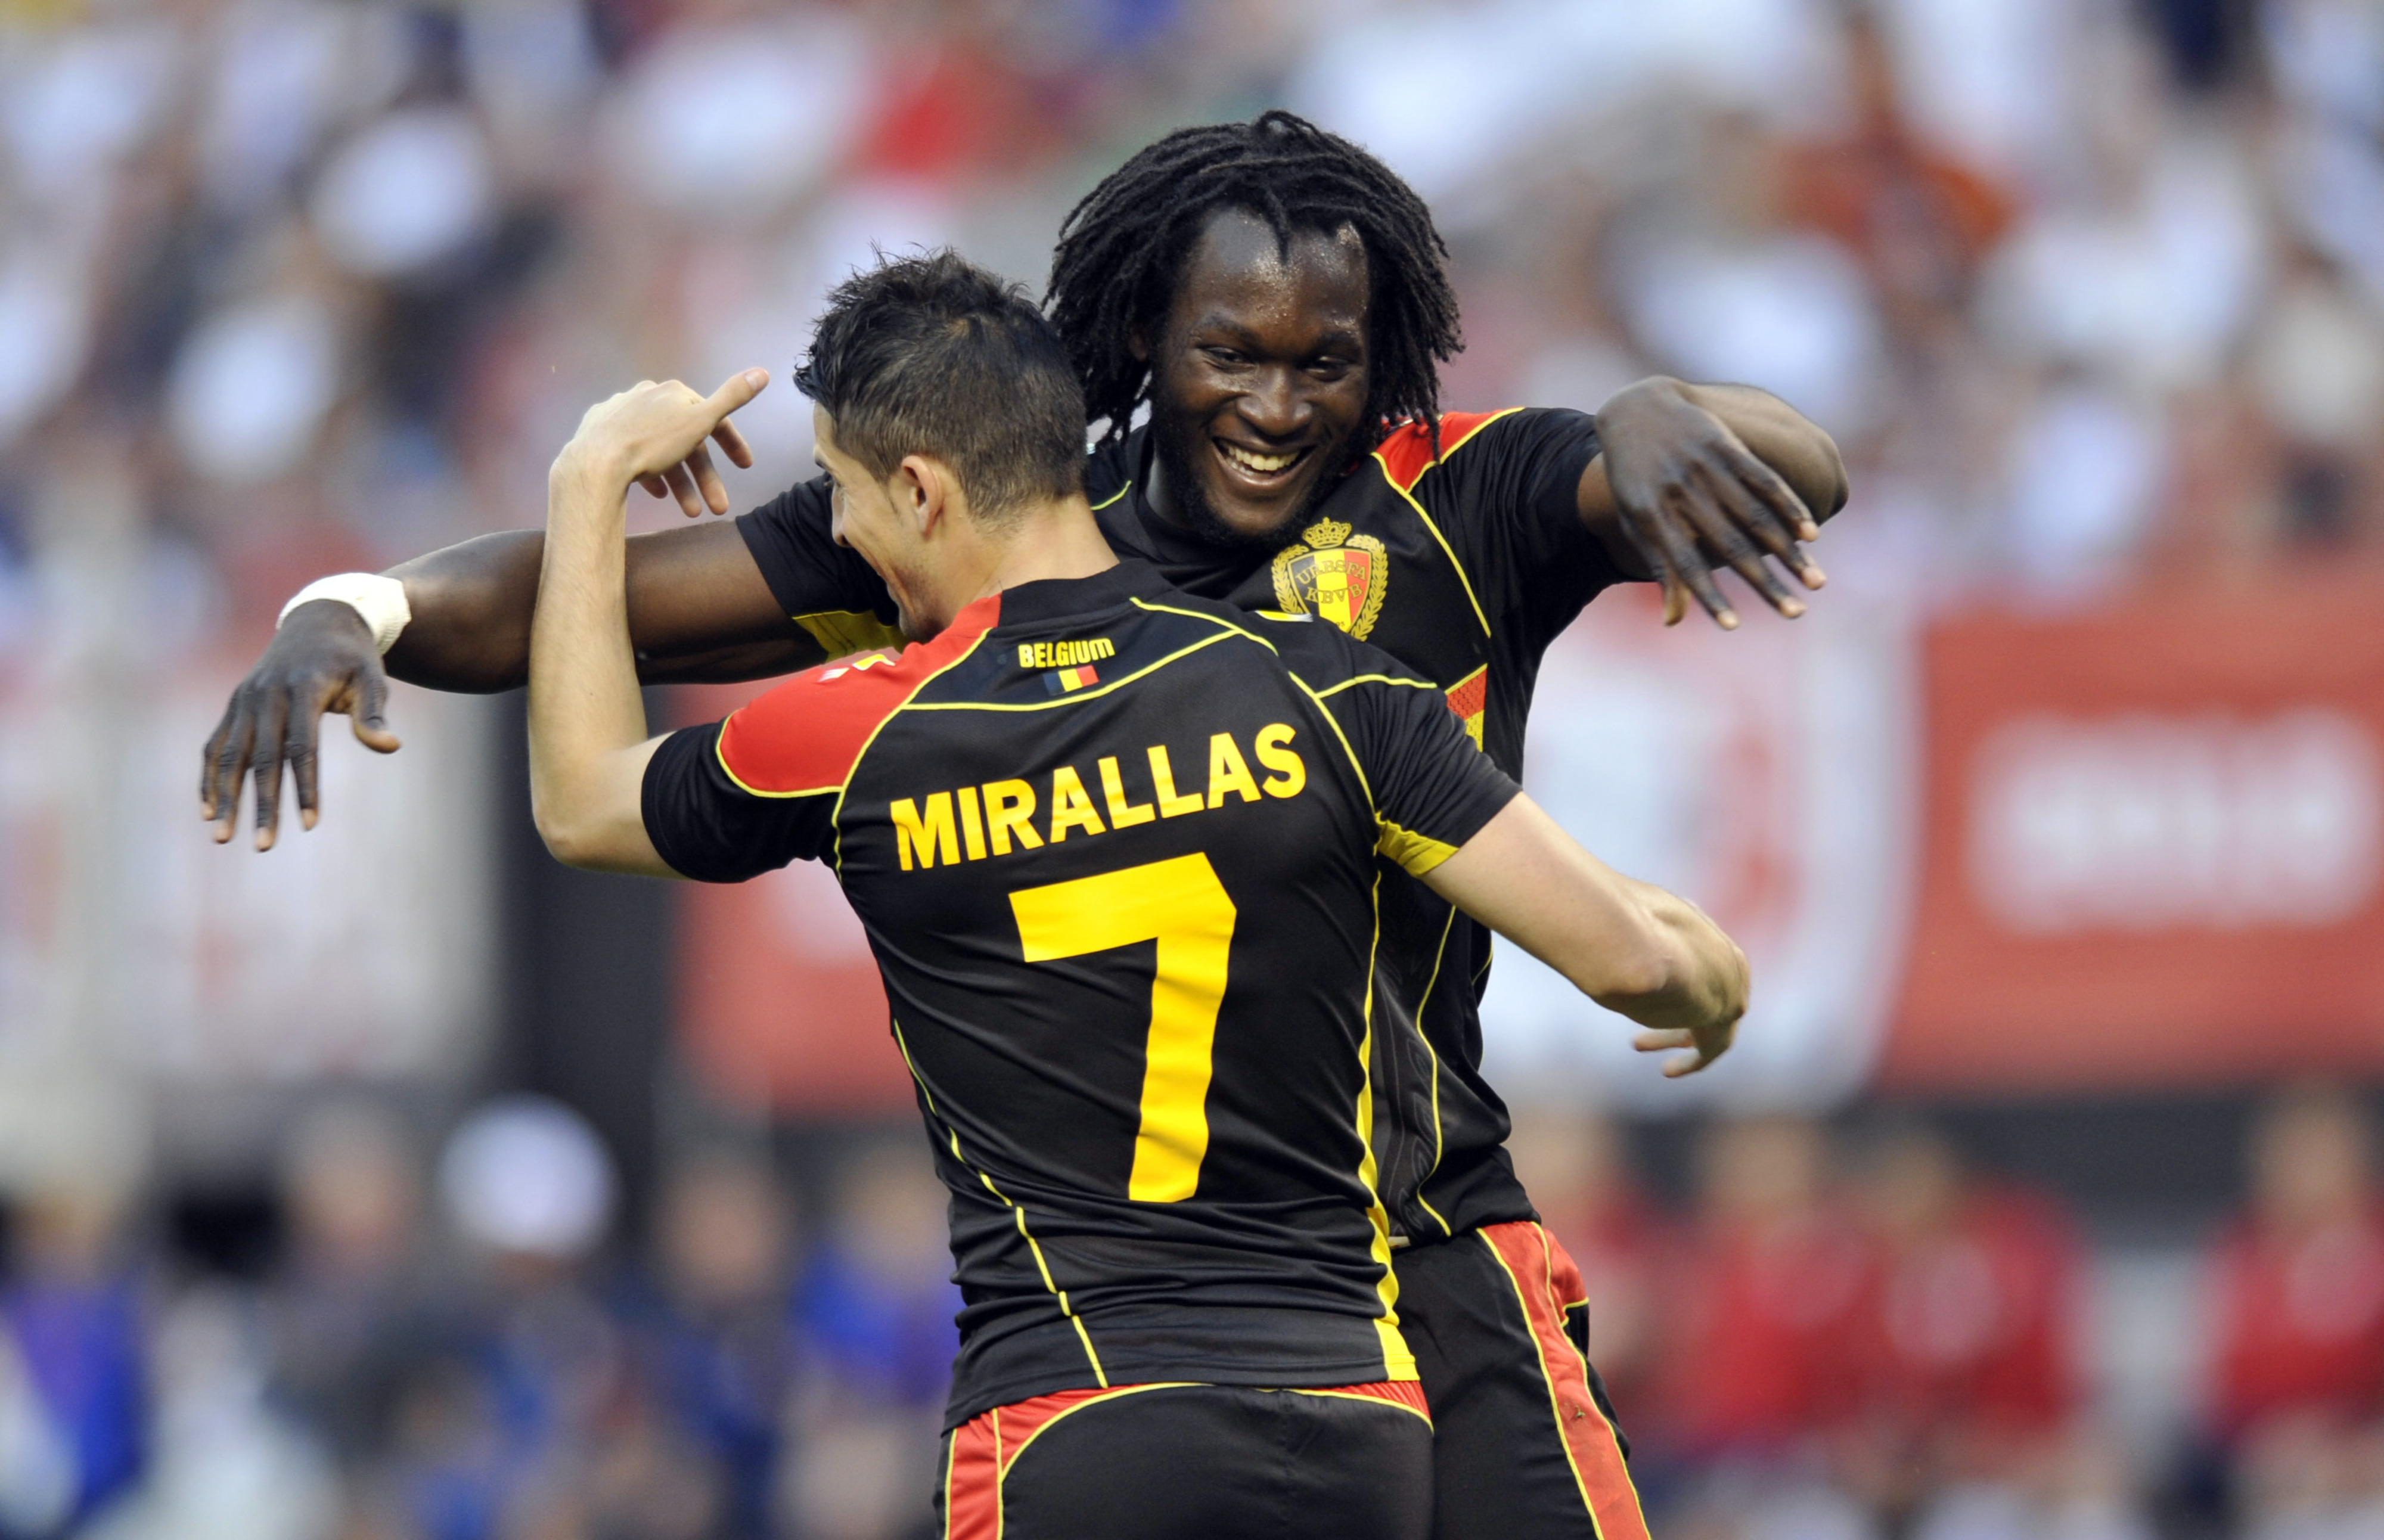 Can Lukaku and Mirallas turn club success into glory for country?